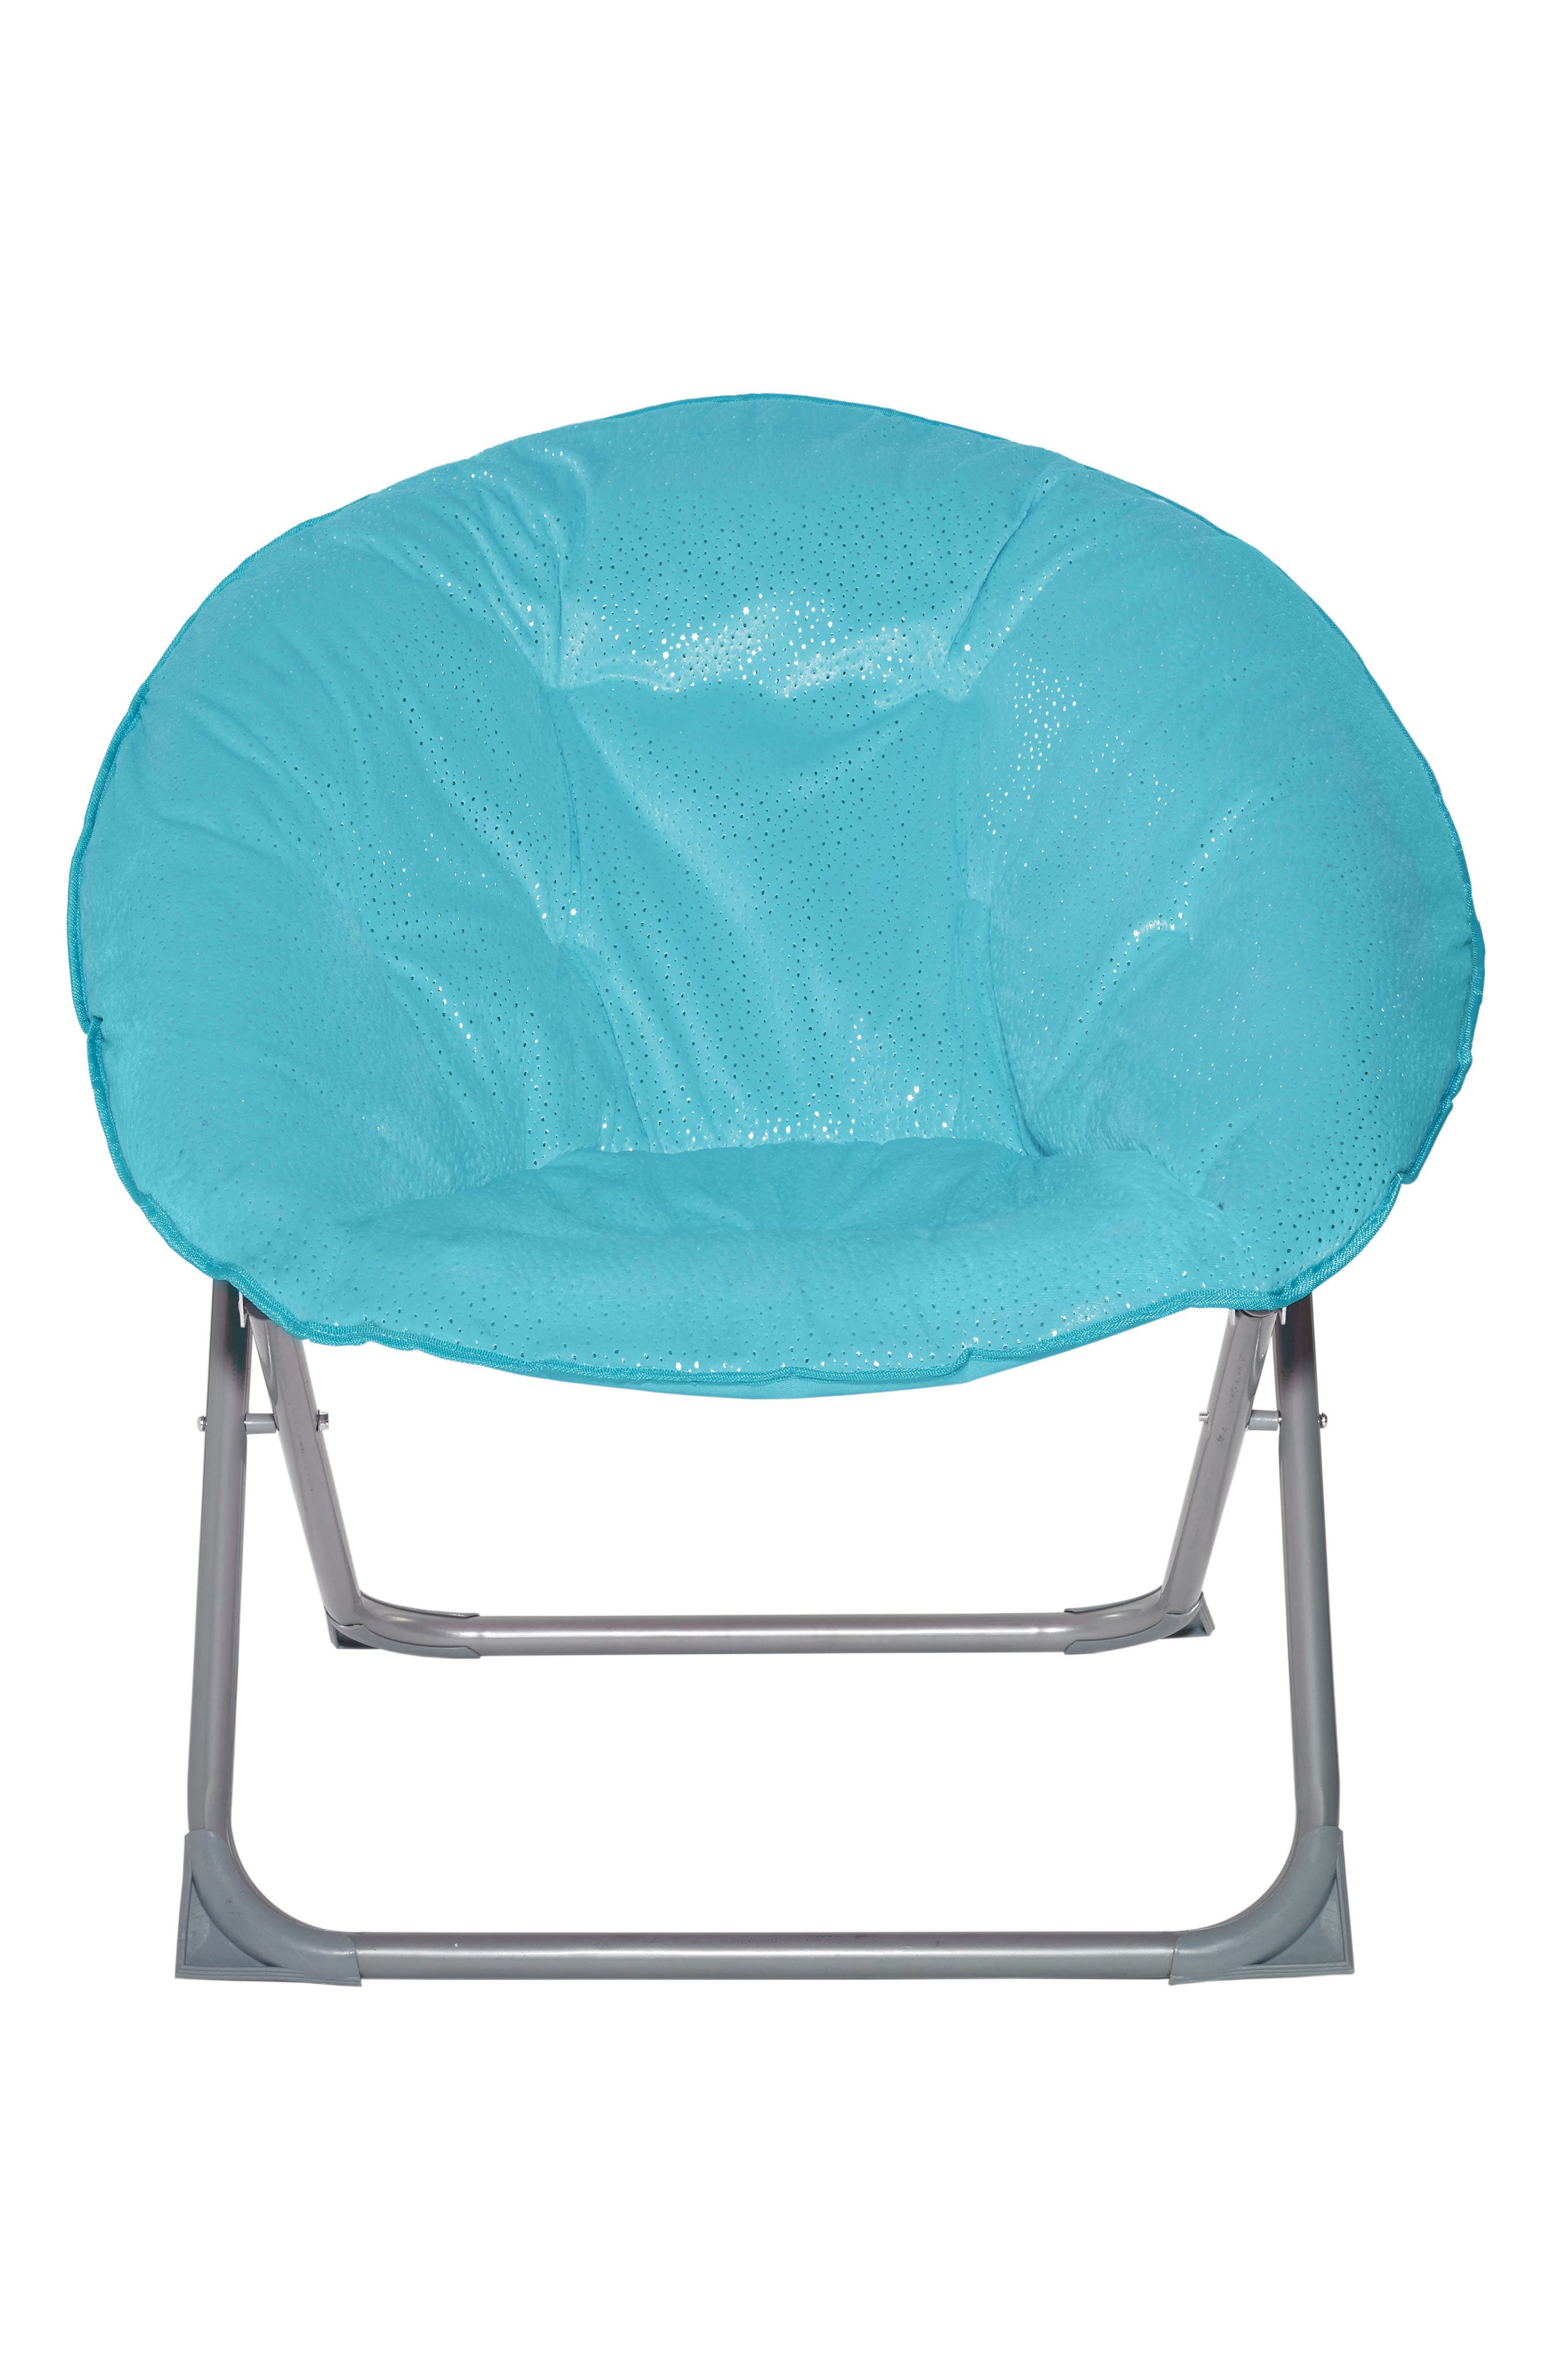 Sparkle Moon Chair,                         Main,                         color, Turquoise